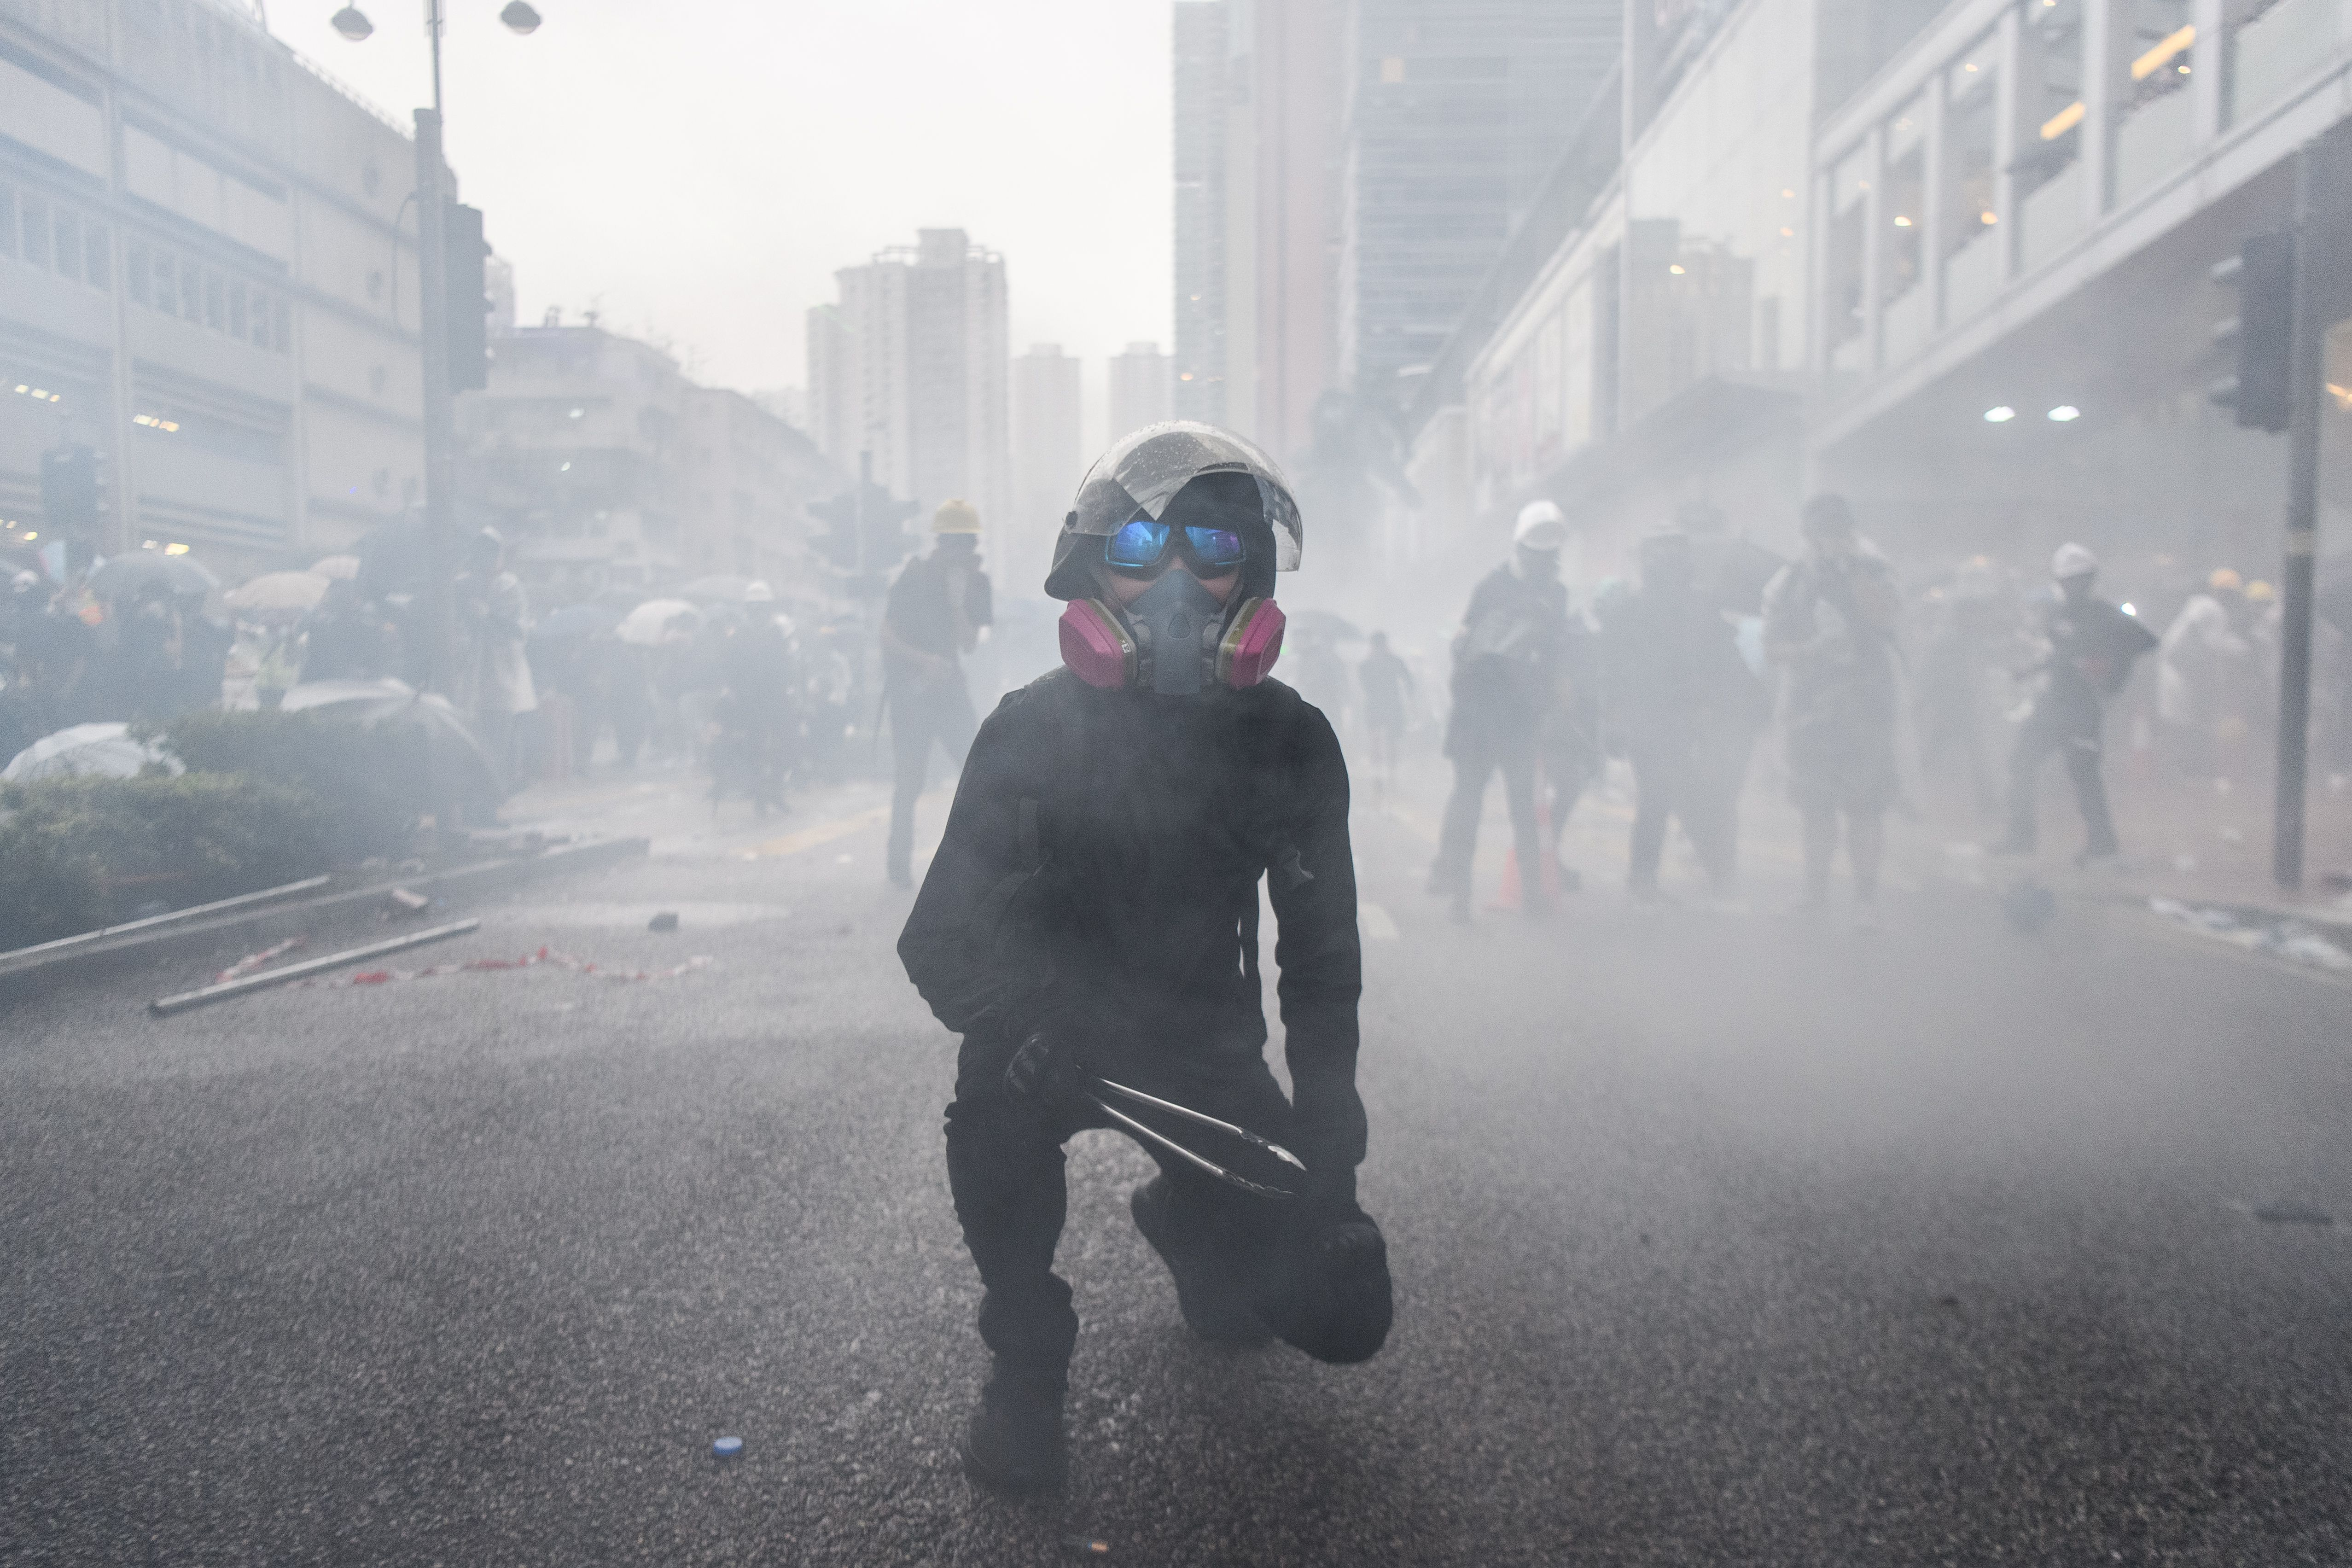 Nick, 20, (C) holds metal cooking tongs as he waits for police to fire more tear gas rounds, shortly after he became seperated from his girlfriend Abby, 19, during a protest in Tsuen Wan, an area in the New Territories in Hong Kong. - (ANTHONY WALLACE/AFP/Getty Images)